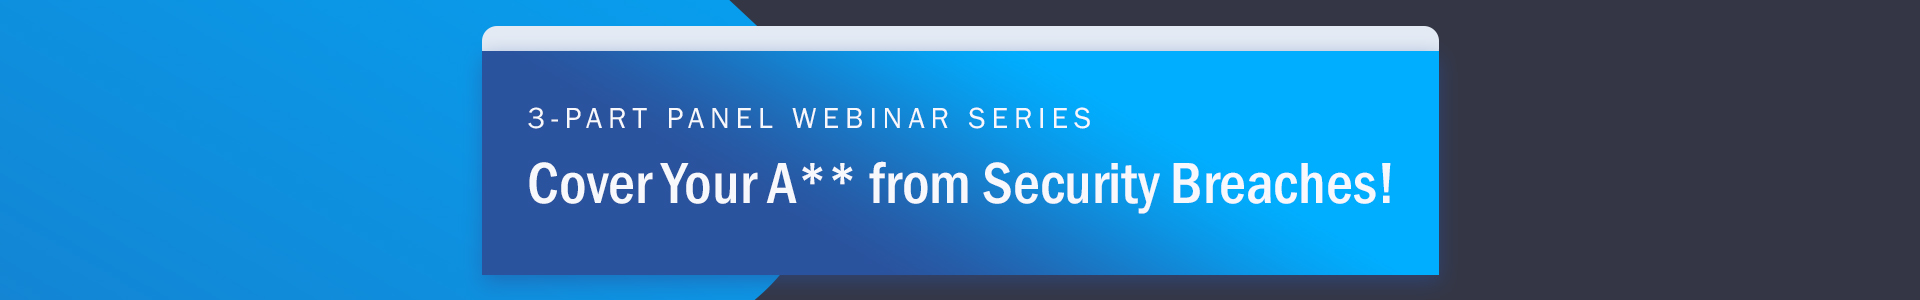 Cover Your A** from Security Breaches Header